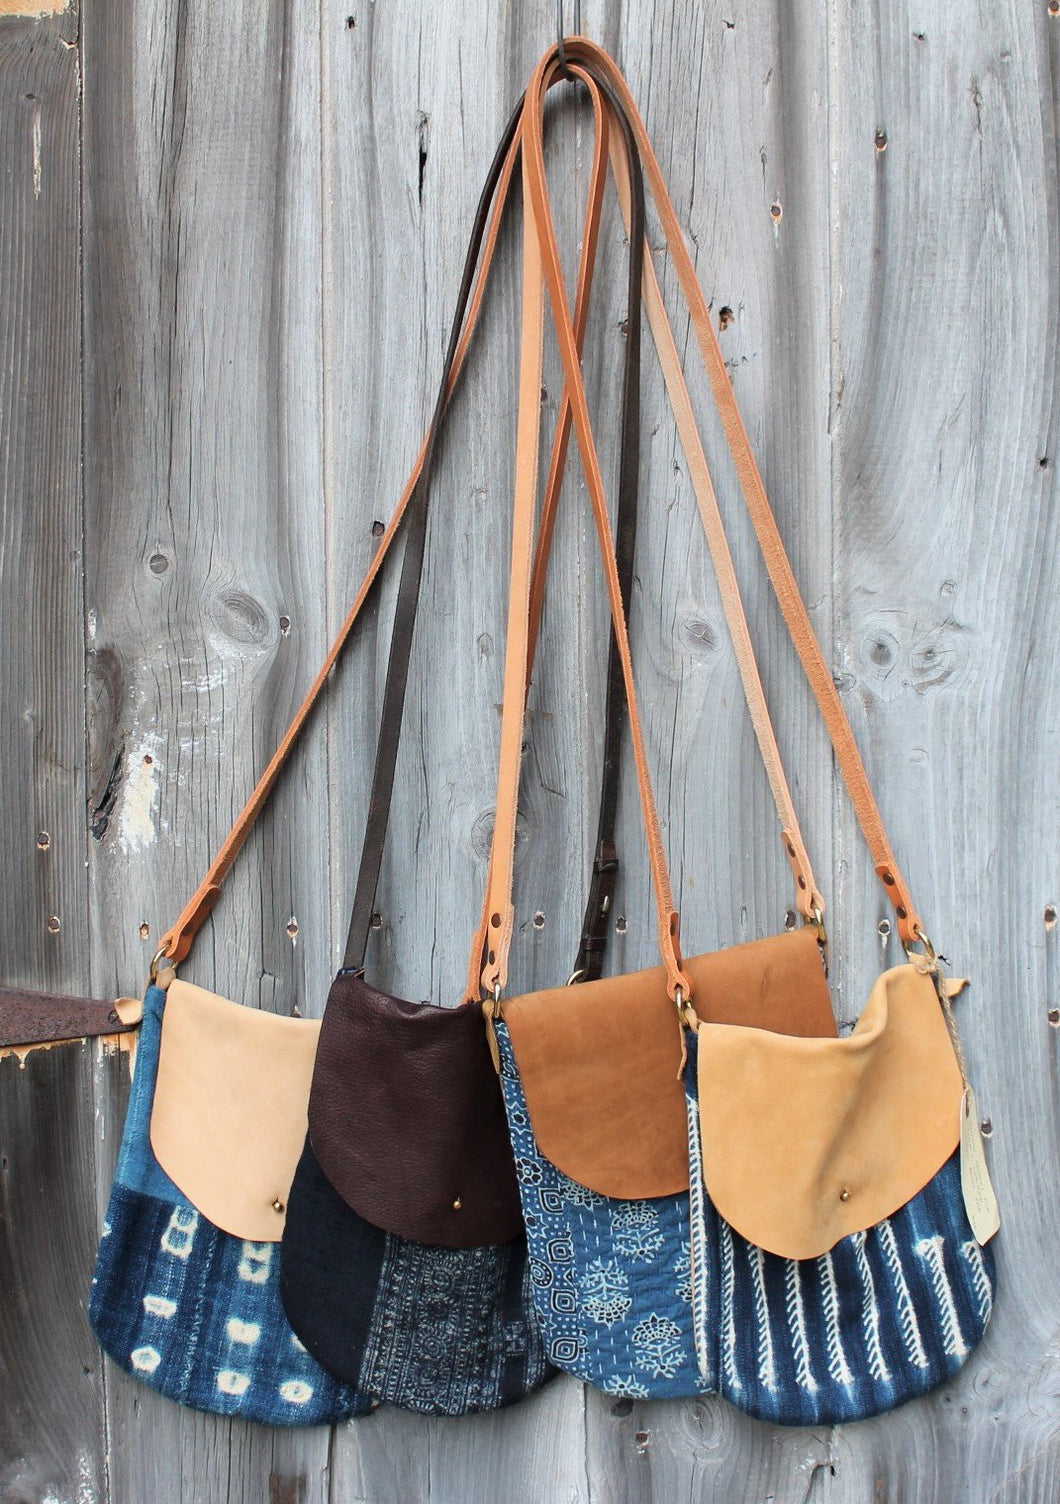 Indigo + Leather Crossbody Bags